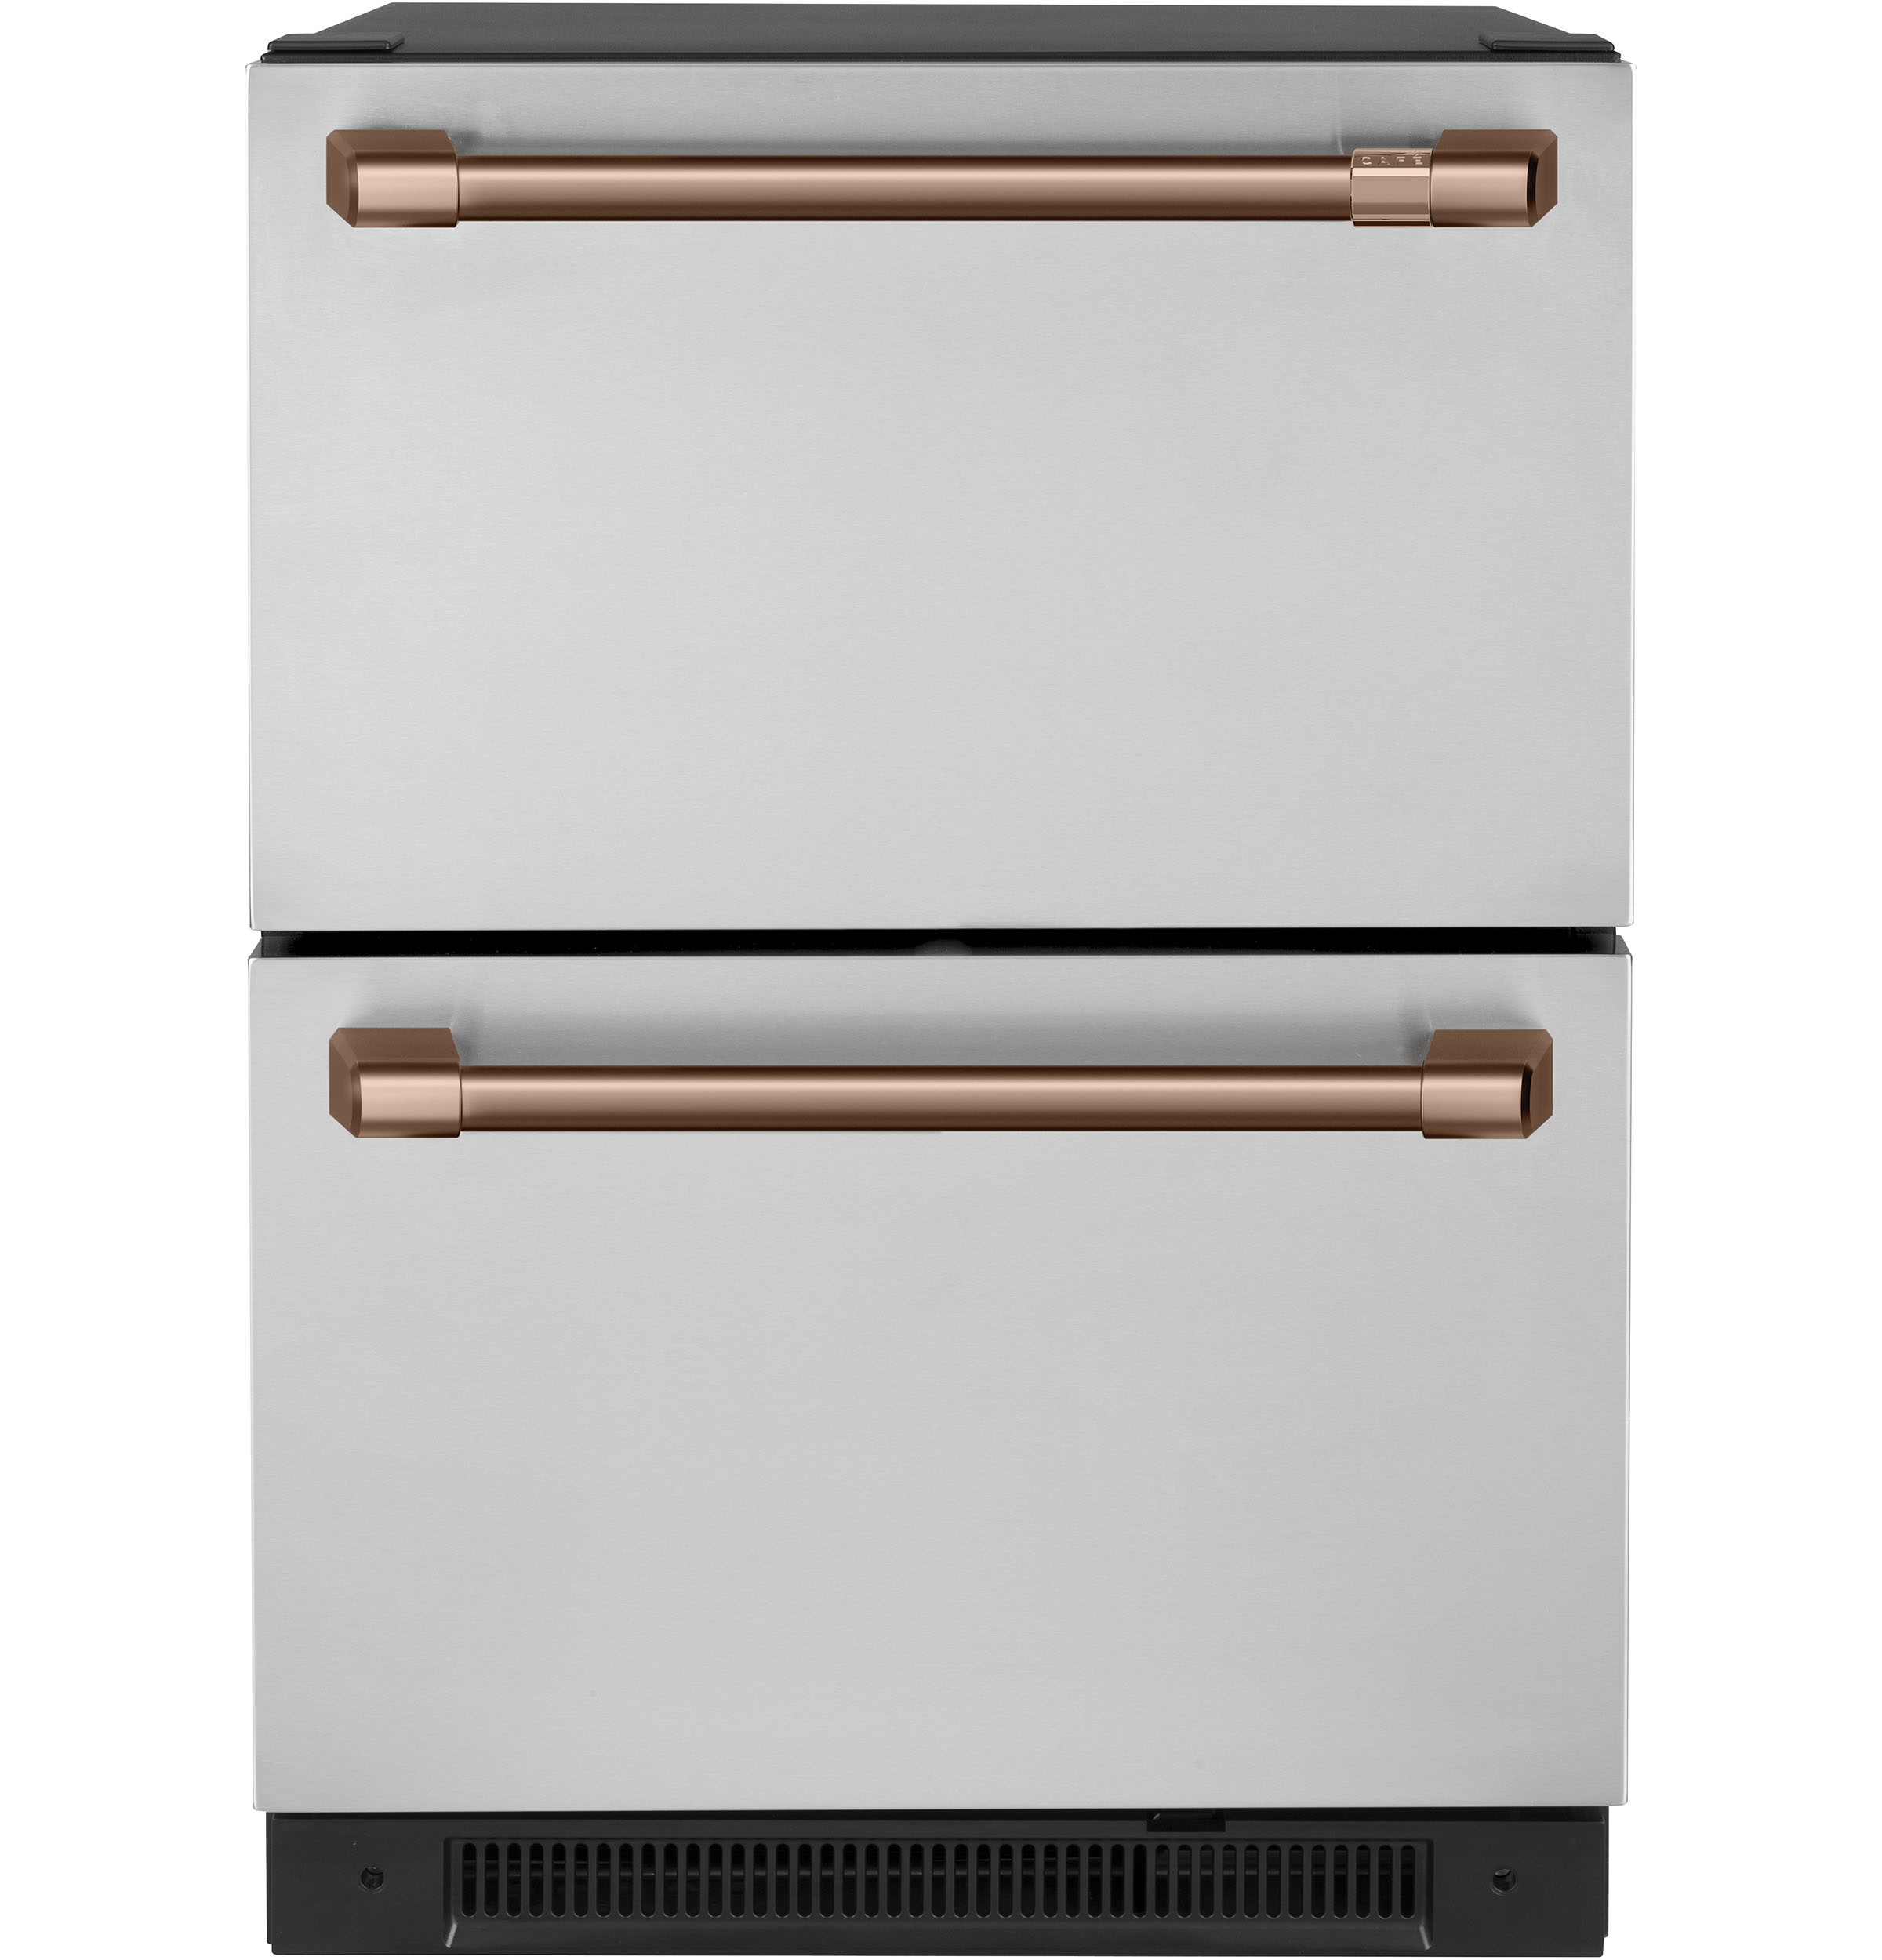 Model: CDE06RP2NS1 | Café™ 5.7 Cu. Ft. Built-In Dual-Drawer Refrigerator